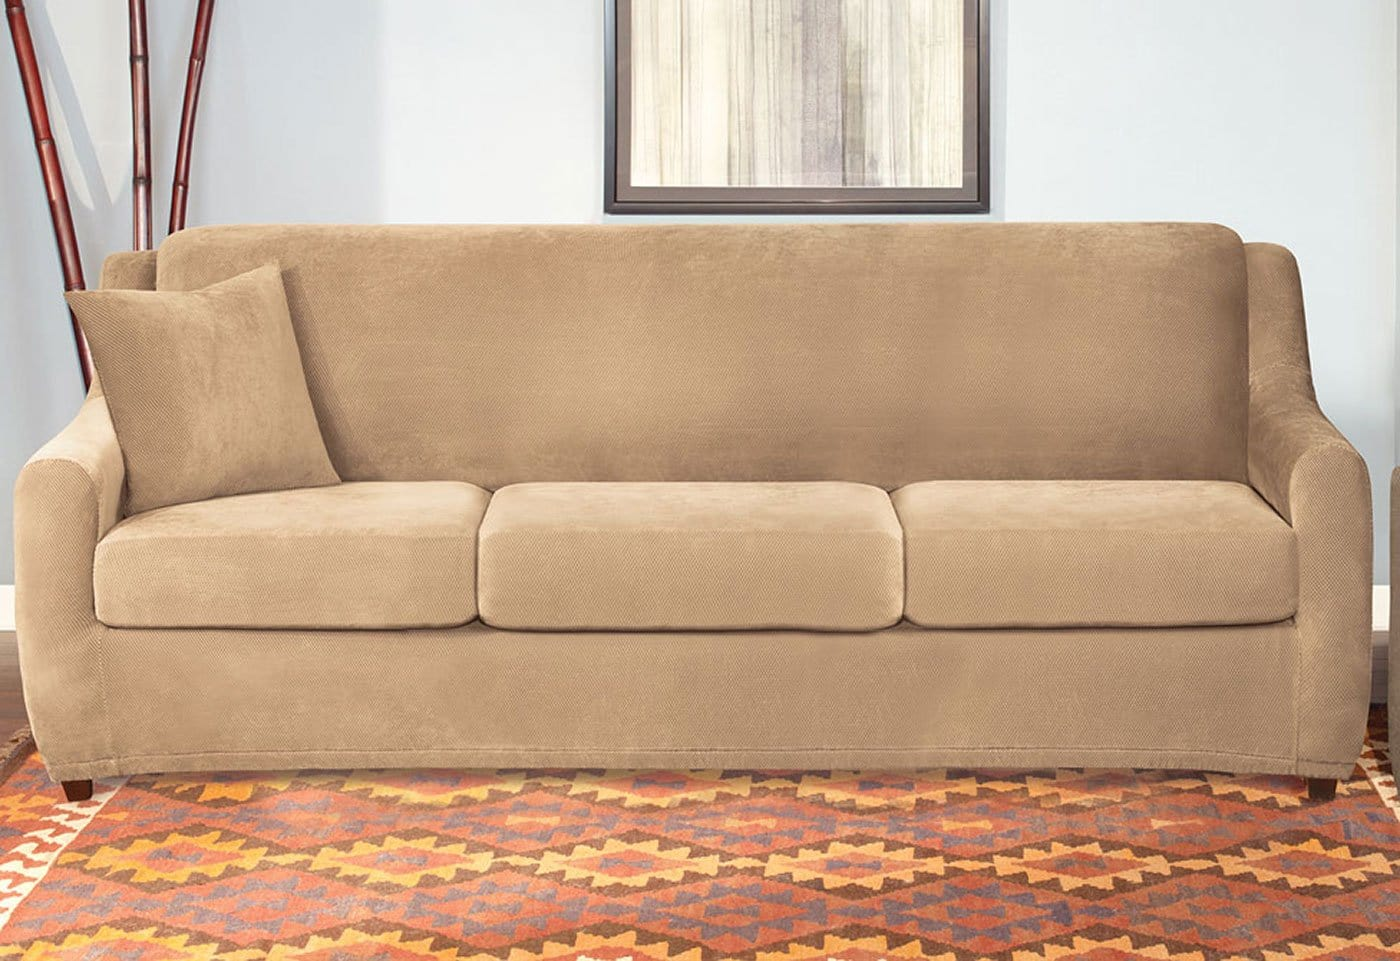 sure fit stretch pearson 3 pc sleeper sofa slipcover full kid bed singapore review home co